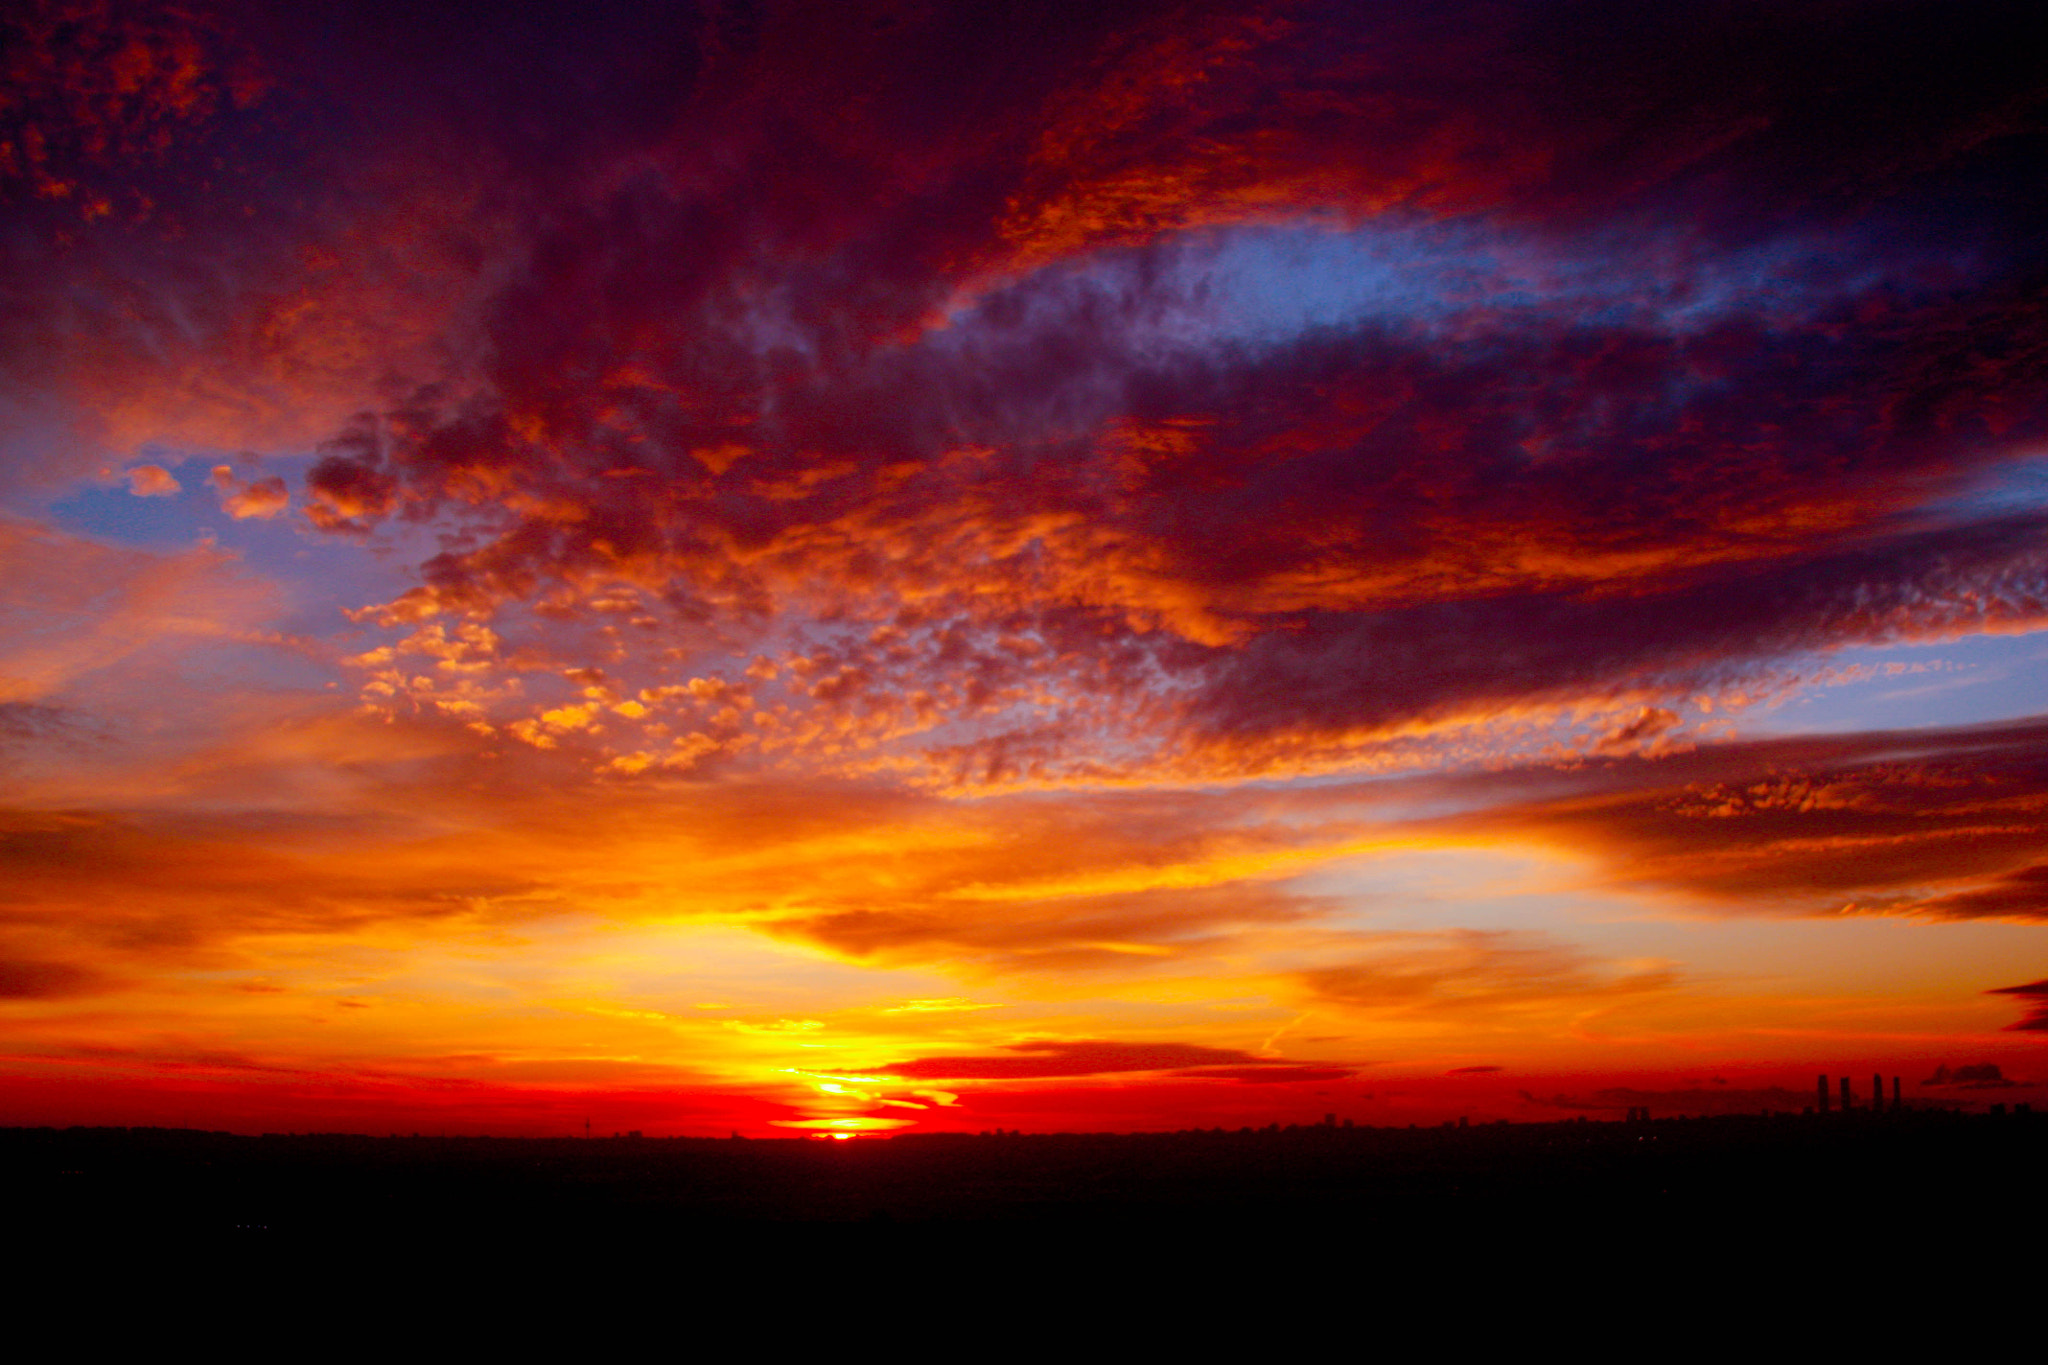 Photograph Usual Sunset by Daniel Rodriguez on 500px